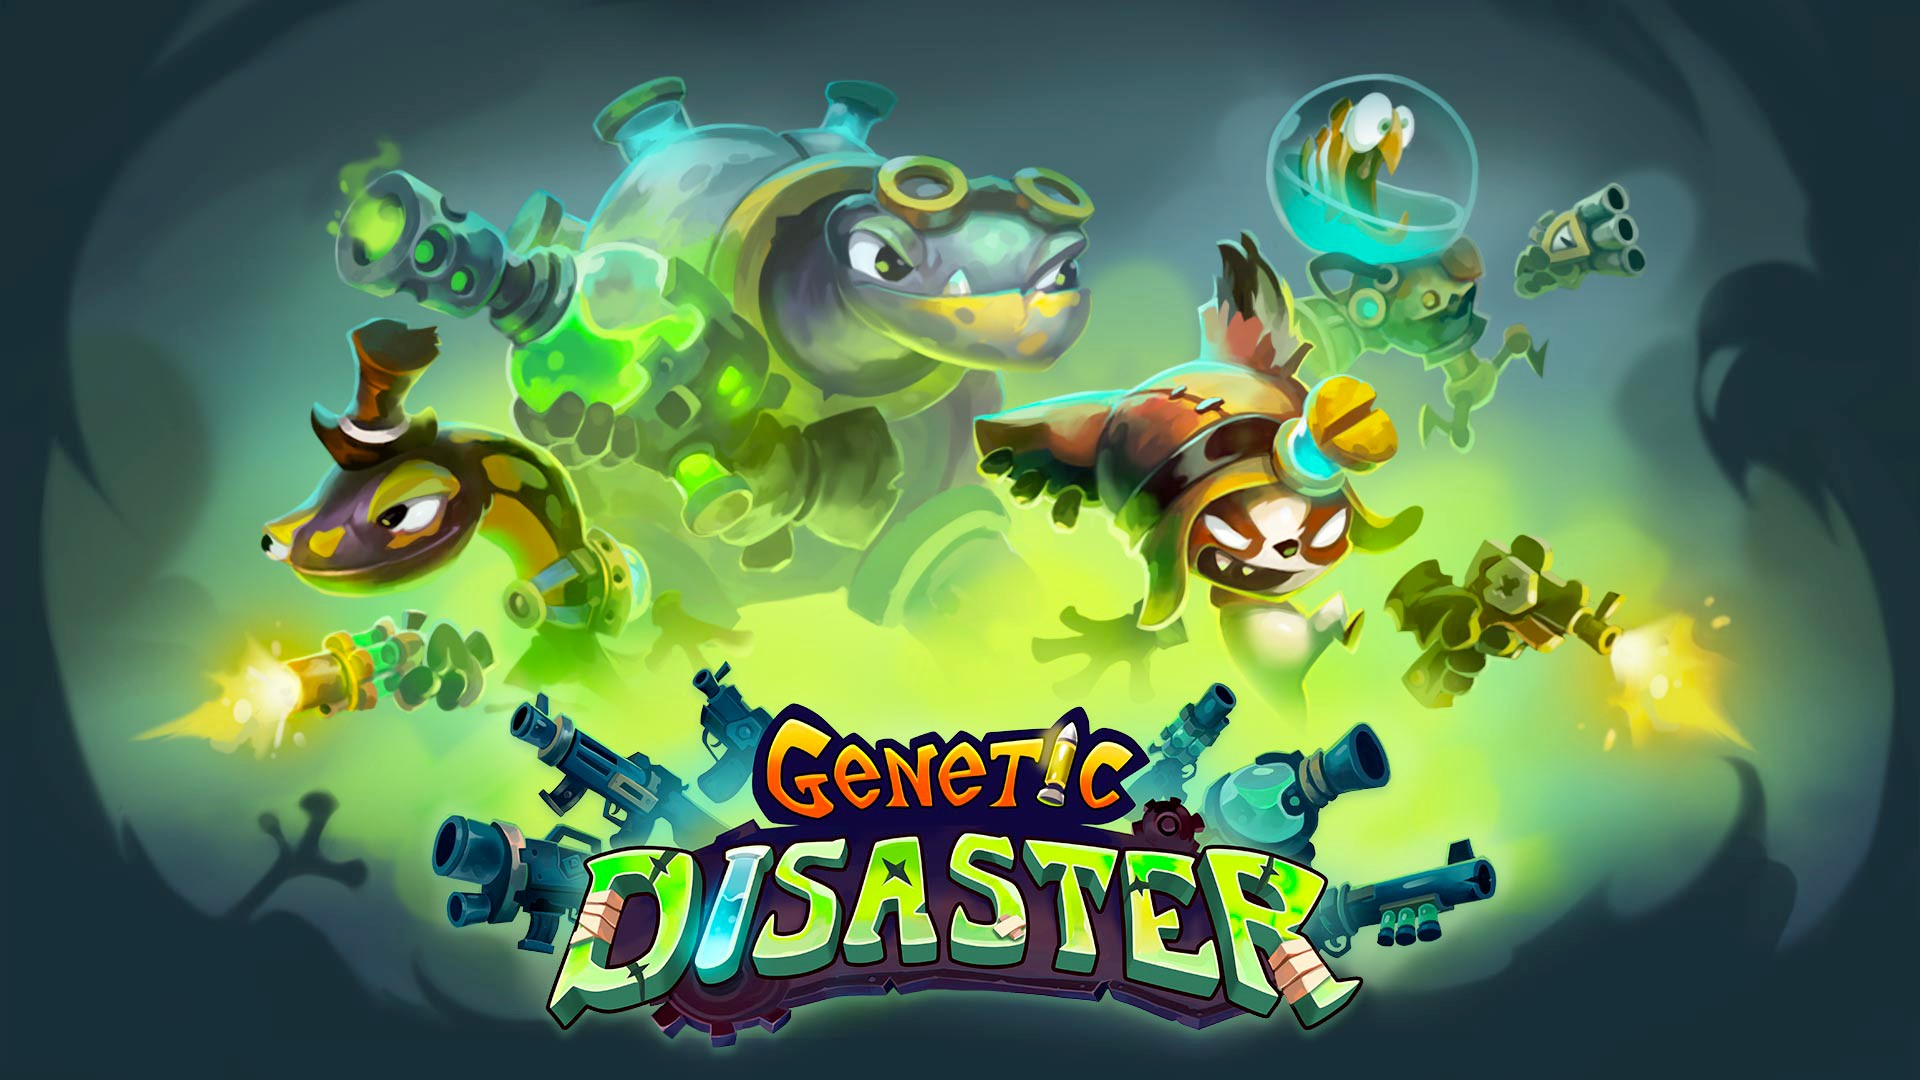 Contest: Win A Steam Key For Genetic Disaster